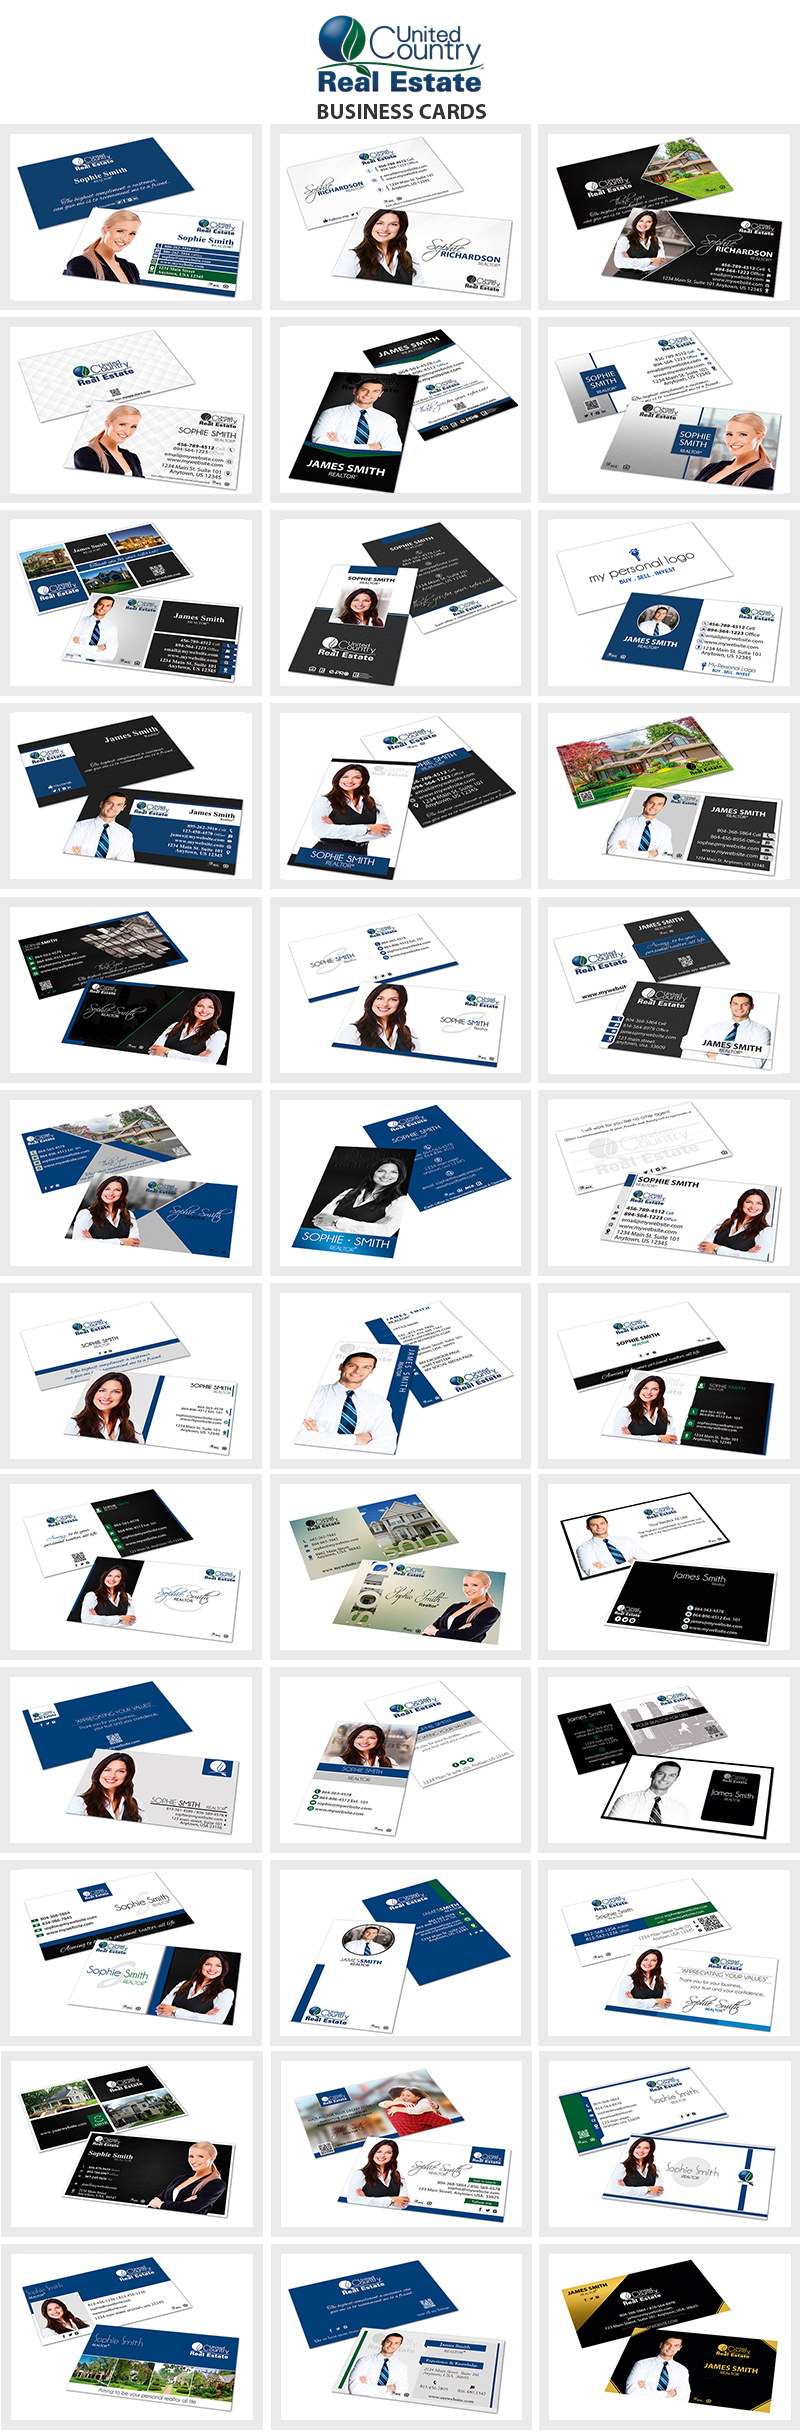 United Country Real Estate Business Cards, United Country Realtor Business Cards, United Country Agent Business Cards, United Country Broker Business Cards, United Country Office Business Cards